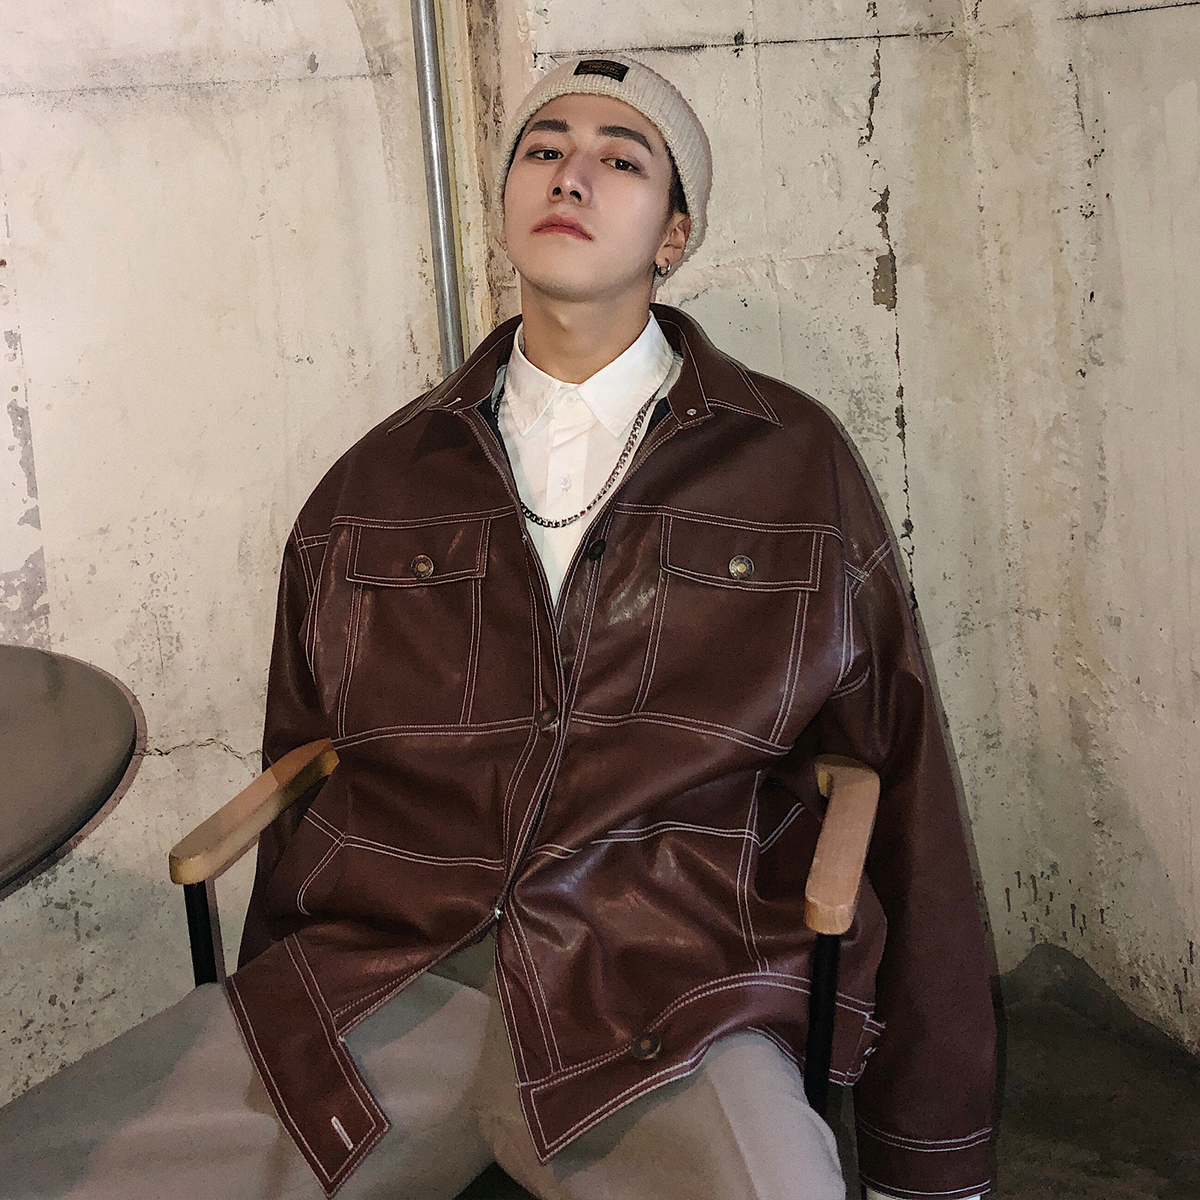 2019 Men's Fashion Hip-hop Style Pocket Leather Clothing Blazers Loose Casual Black/brown Jacket Zipper Outerwear Coat Size M-XL